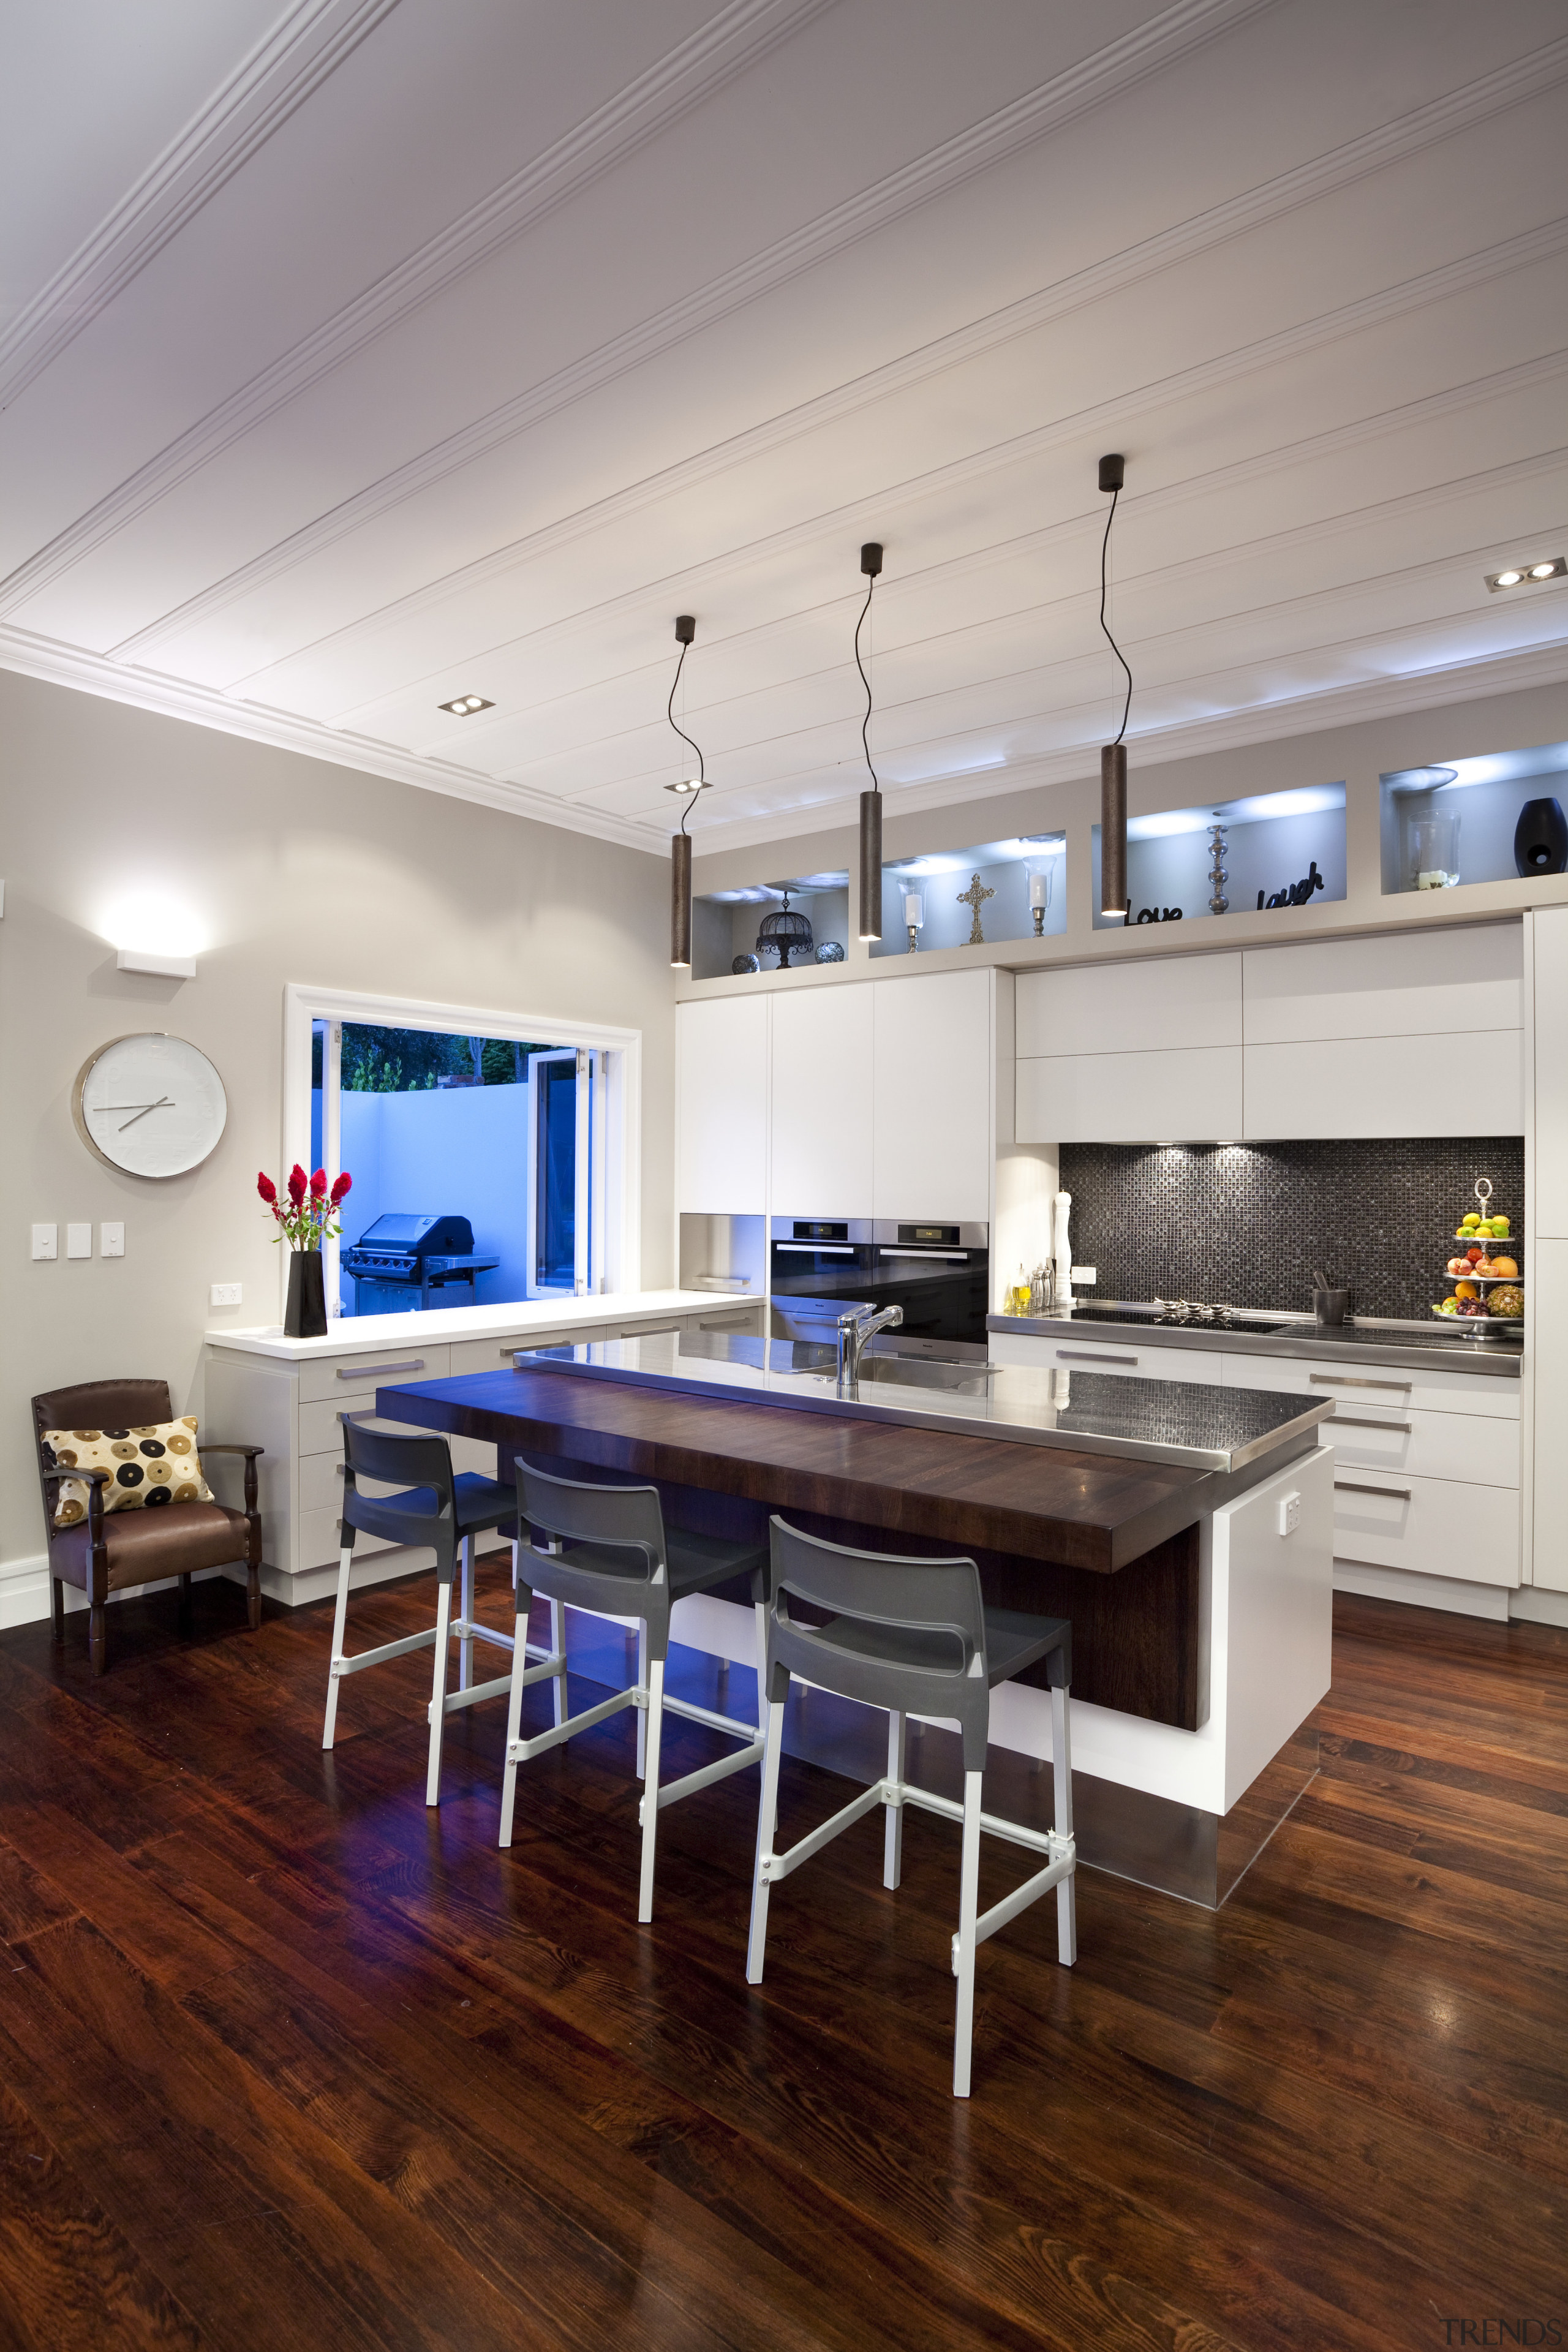 white island with stainless steel benchtop, dark quartz ceiling, countertop, floor, flooring, hardwood, interior design, kitchen, laminate flooring, living room, loft, room, table, wood, wood flooring, gray